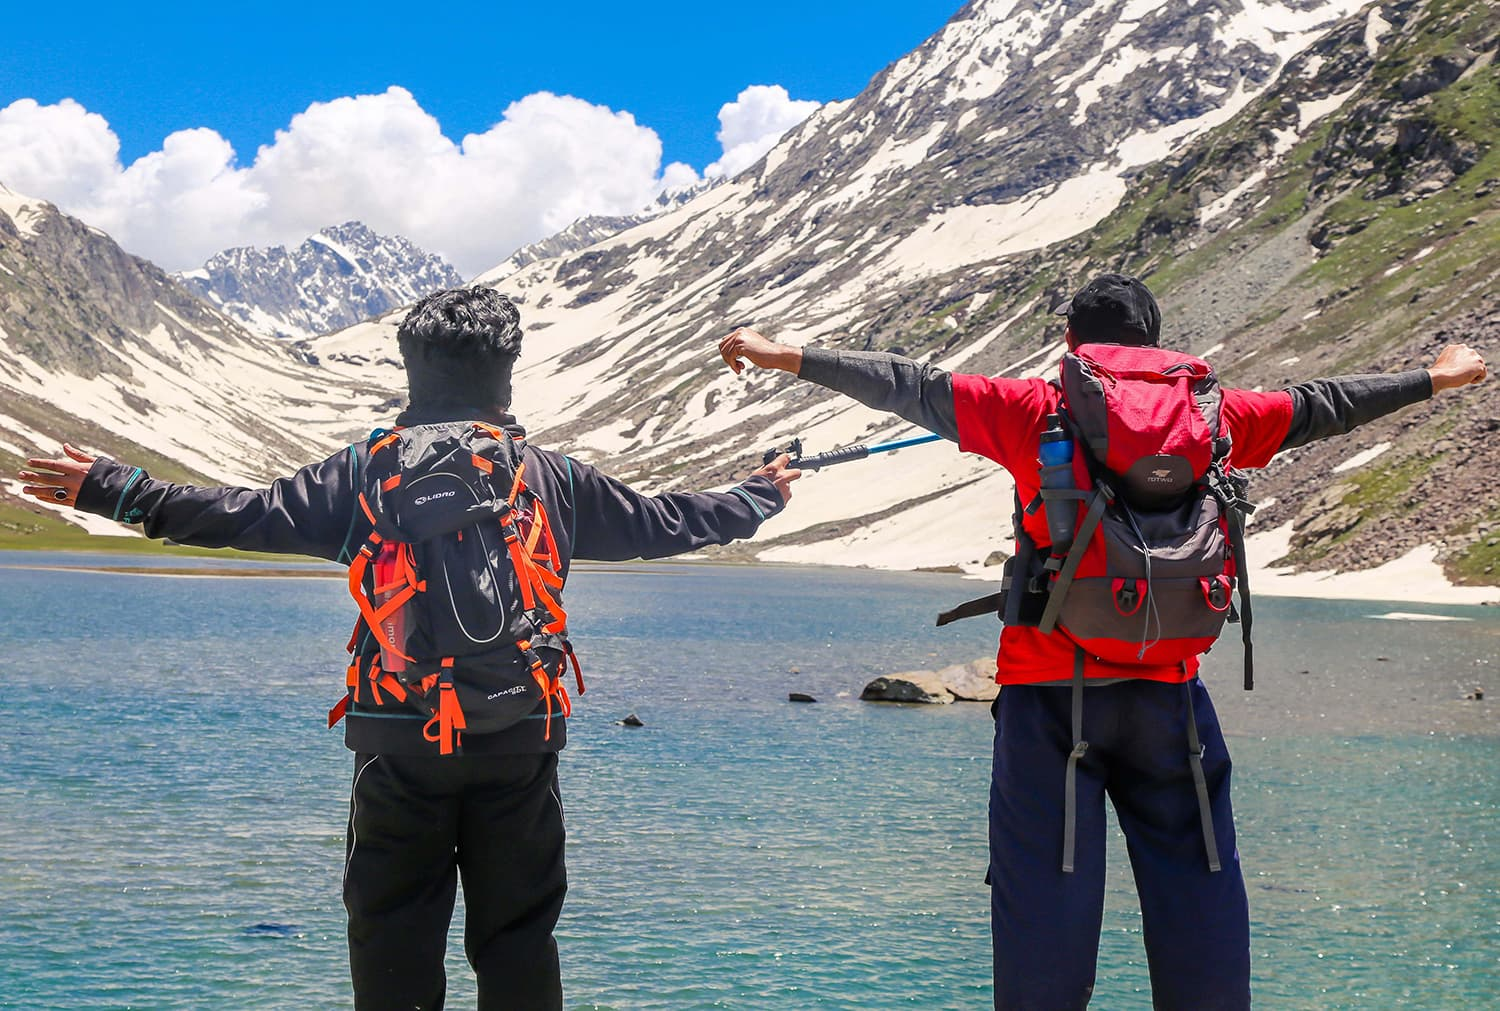 Jubilant trekkers pose for a photo in front of Izmis lake. ─ Photo by author